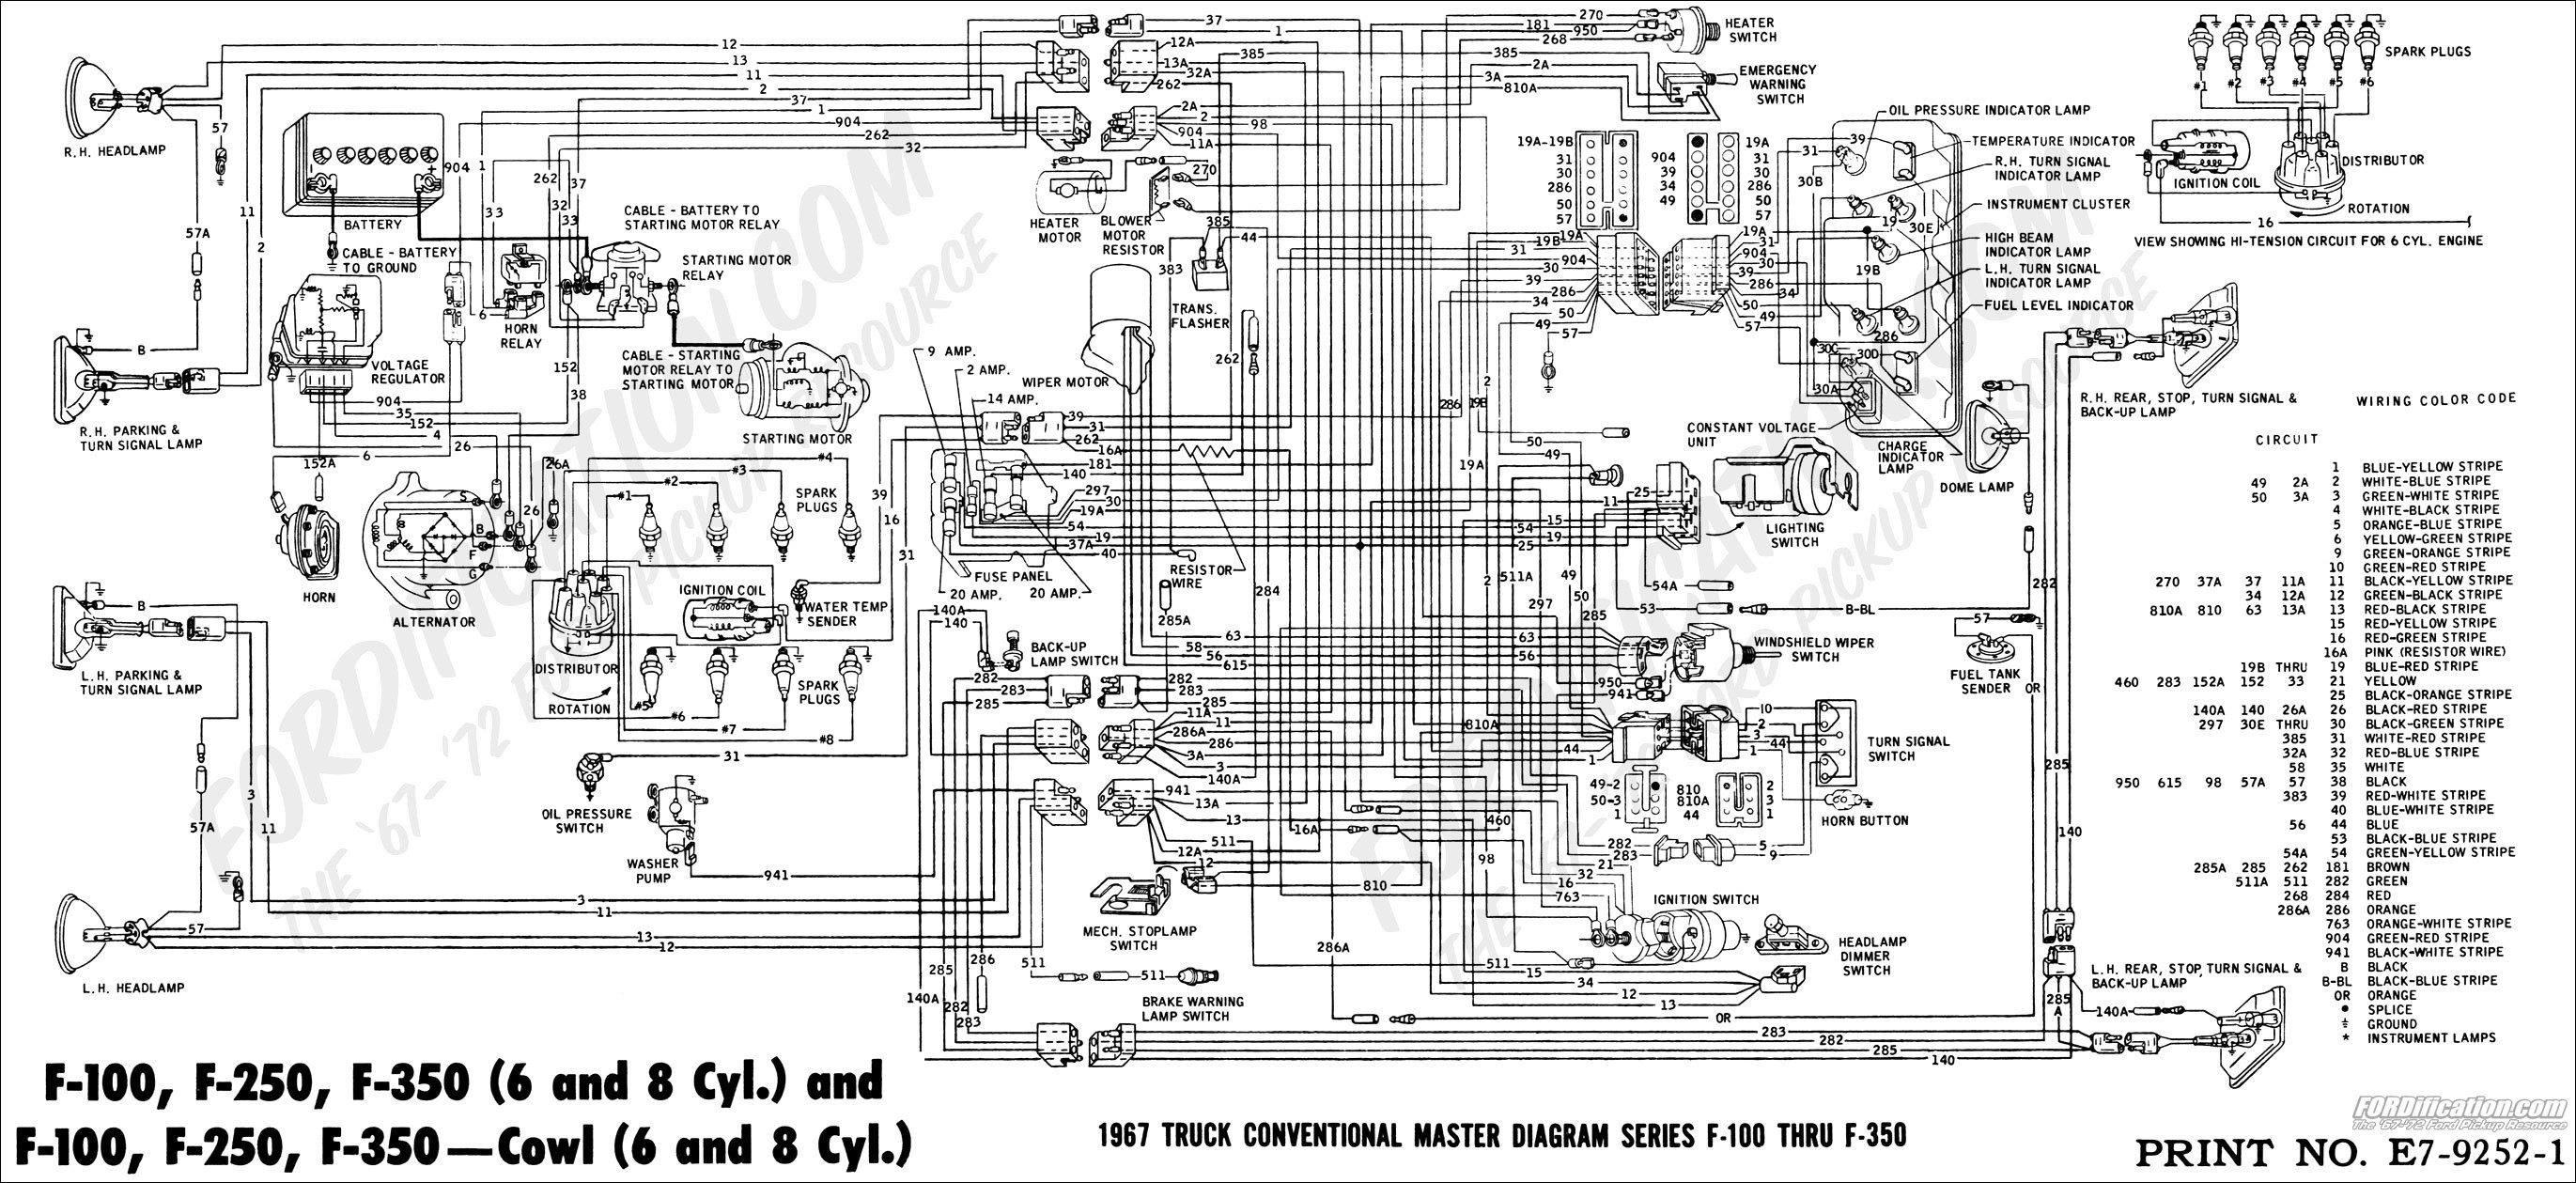 wiring diagram ford f150 my wiring diagram rh detoxicrecenze com 2000 Ford F-150 Wiring Diagram 2000 Ford F-150 Wiring Diagram